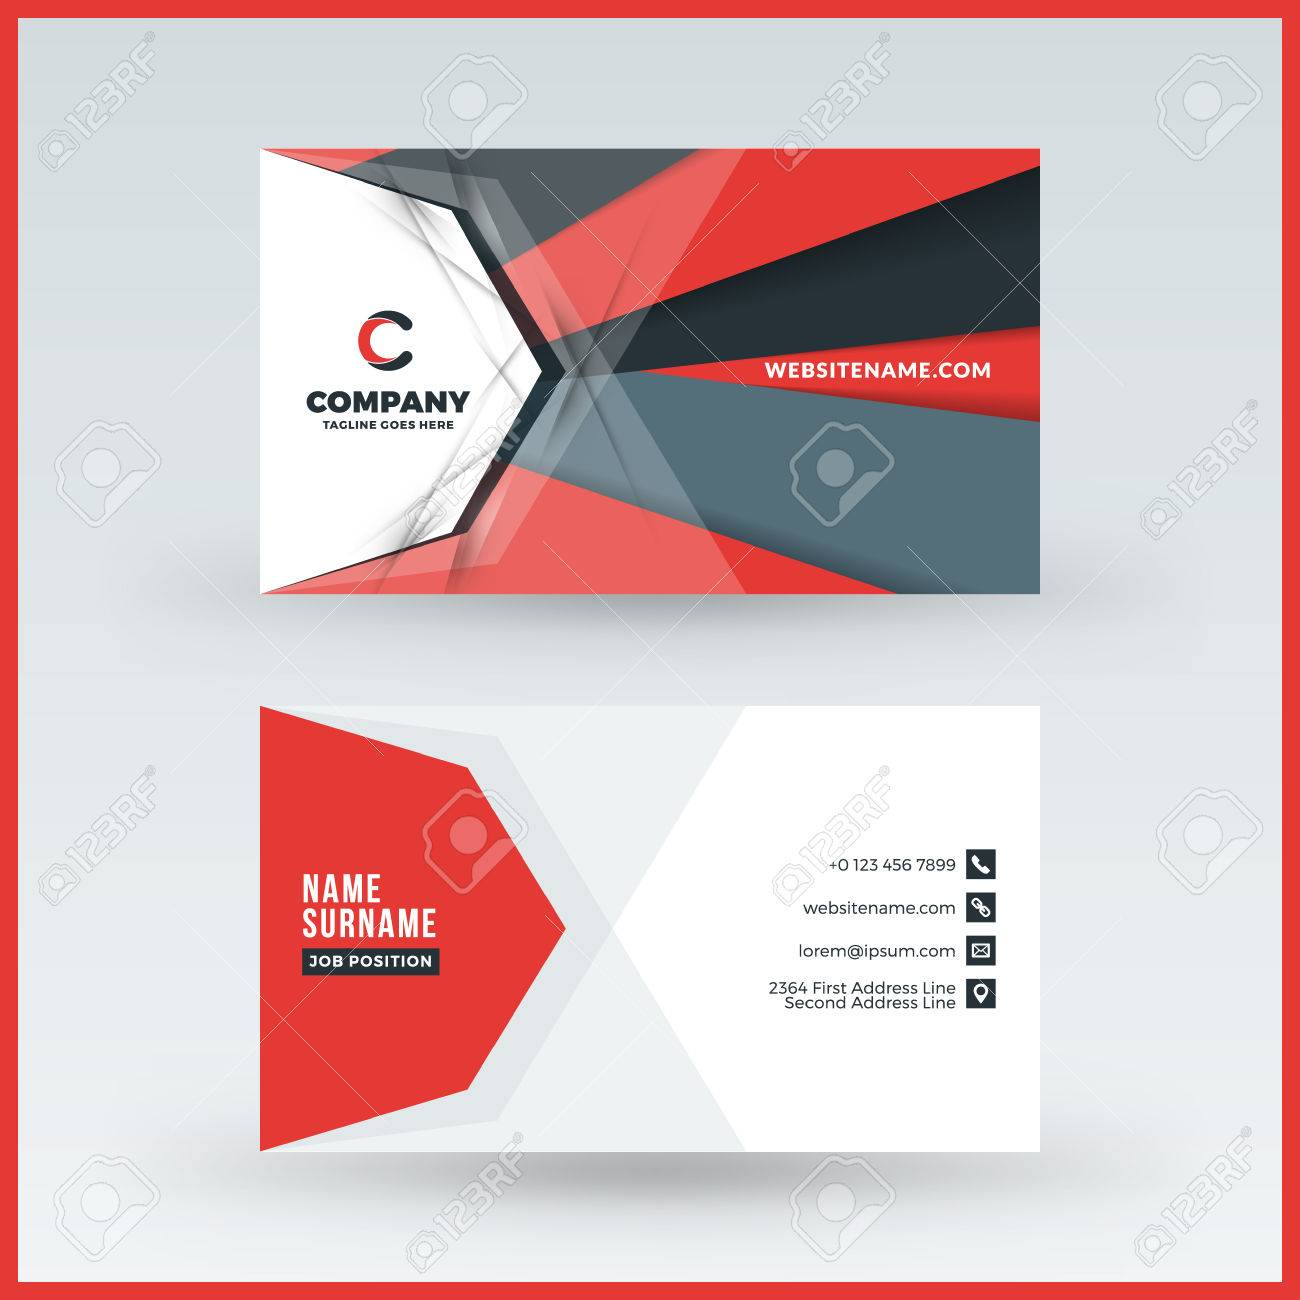 Doublesided Horizontal Business Card Template Vector Mockup - Horizontal business card template